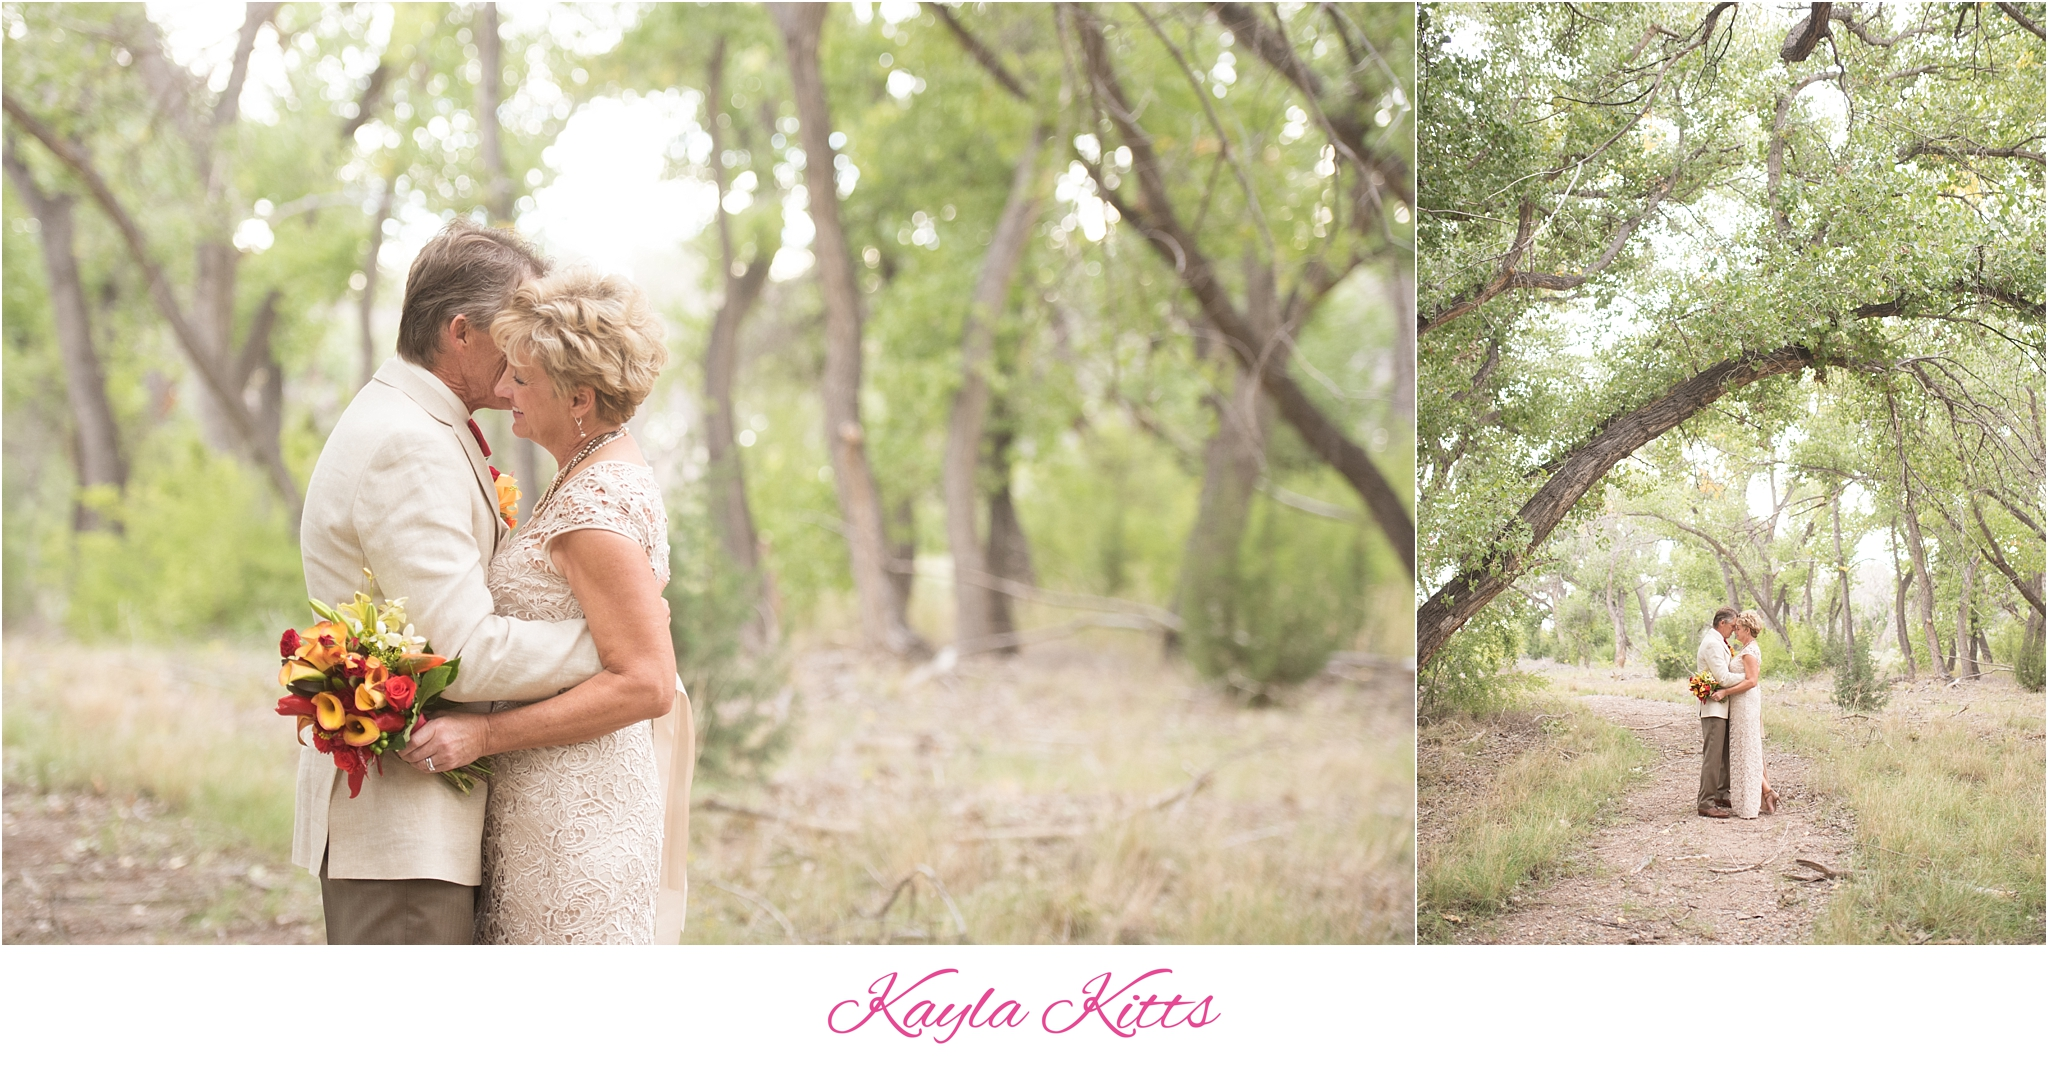 kayla kitts photography - albuquerque wedding photographer - albuquerque wedding photography - albuquerque venue - hyatt tamaya - hyatt tamaya wedding - new mexico wedding photographer_0052.jpg